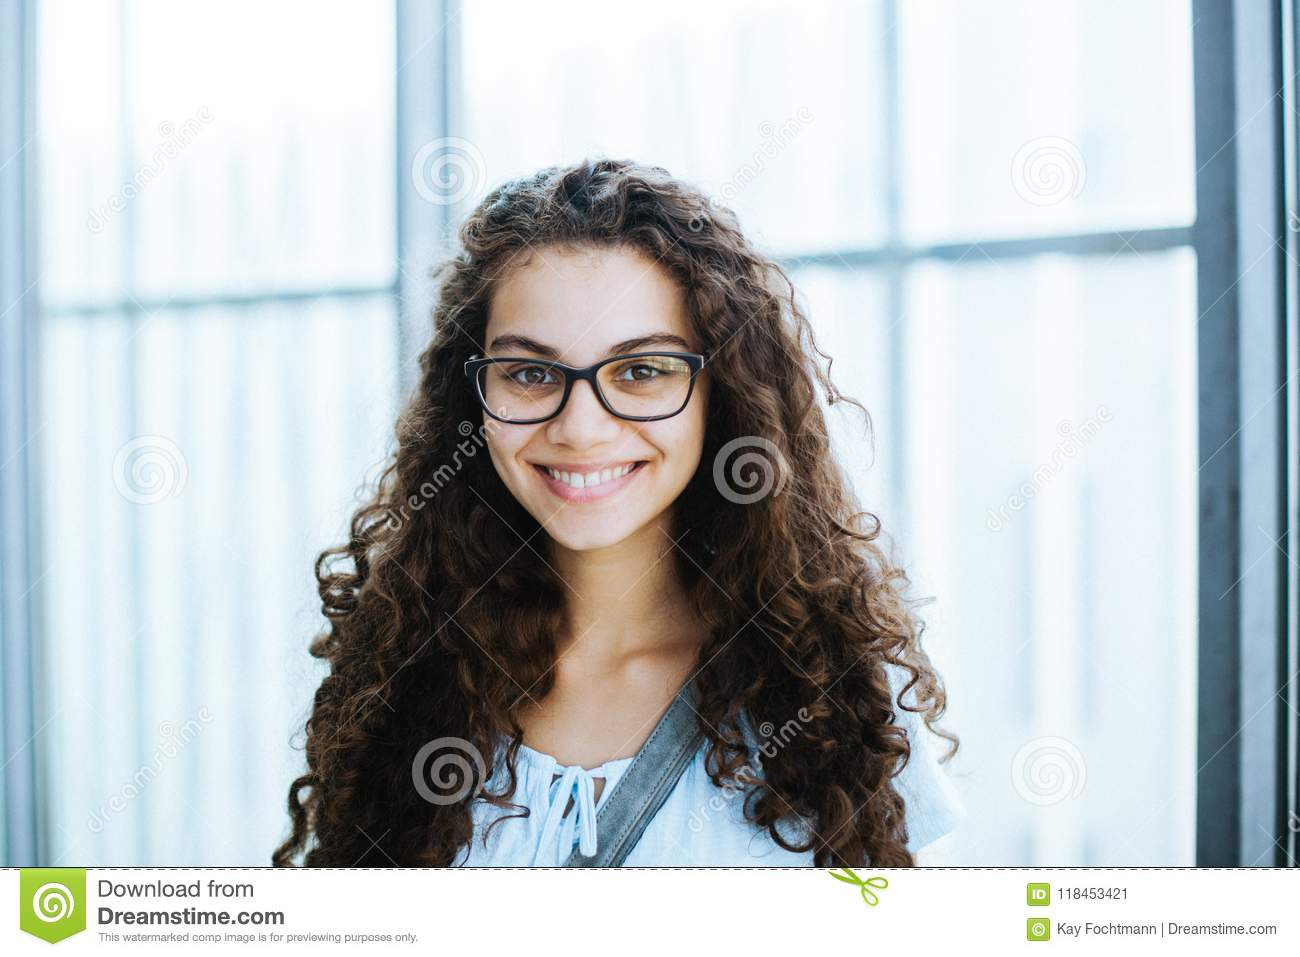 Cute brazilian girl with curly hair and casual clothing smiles for the camera